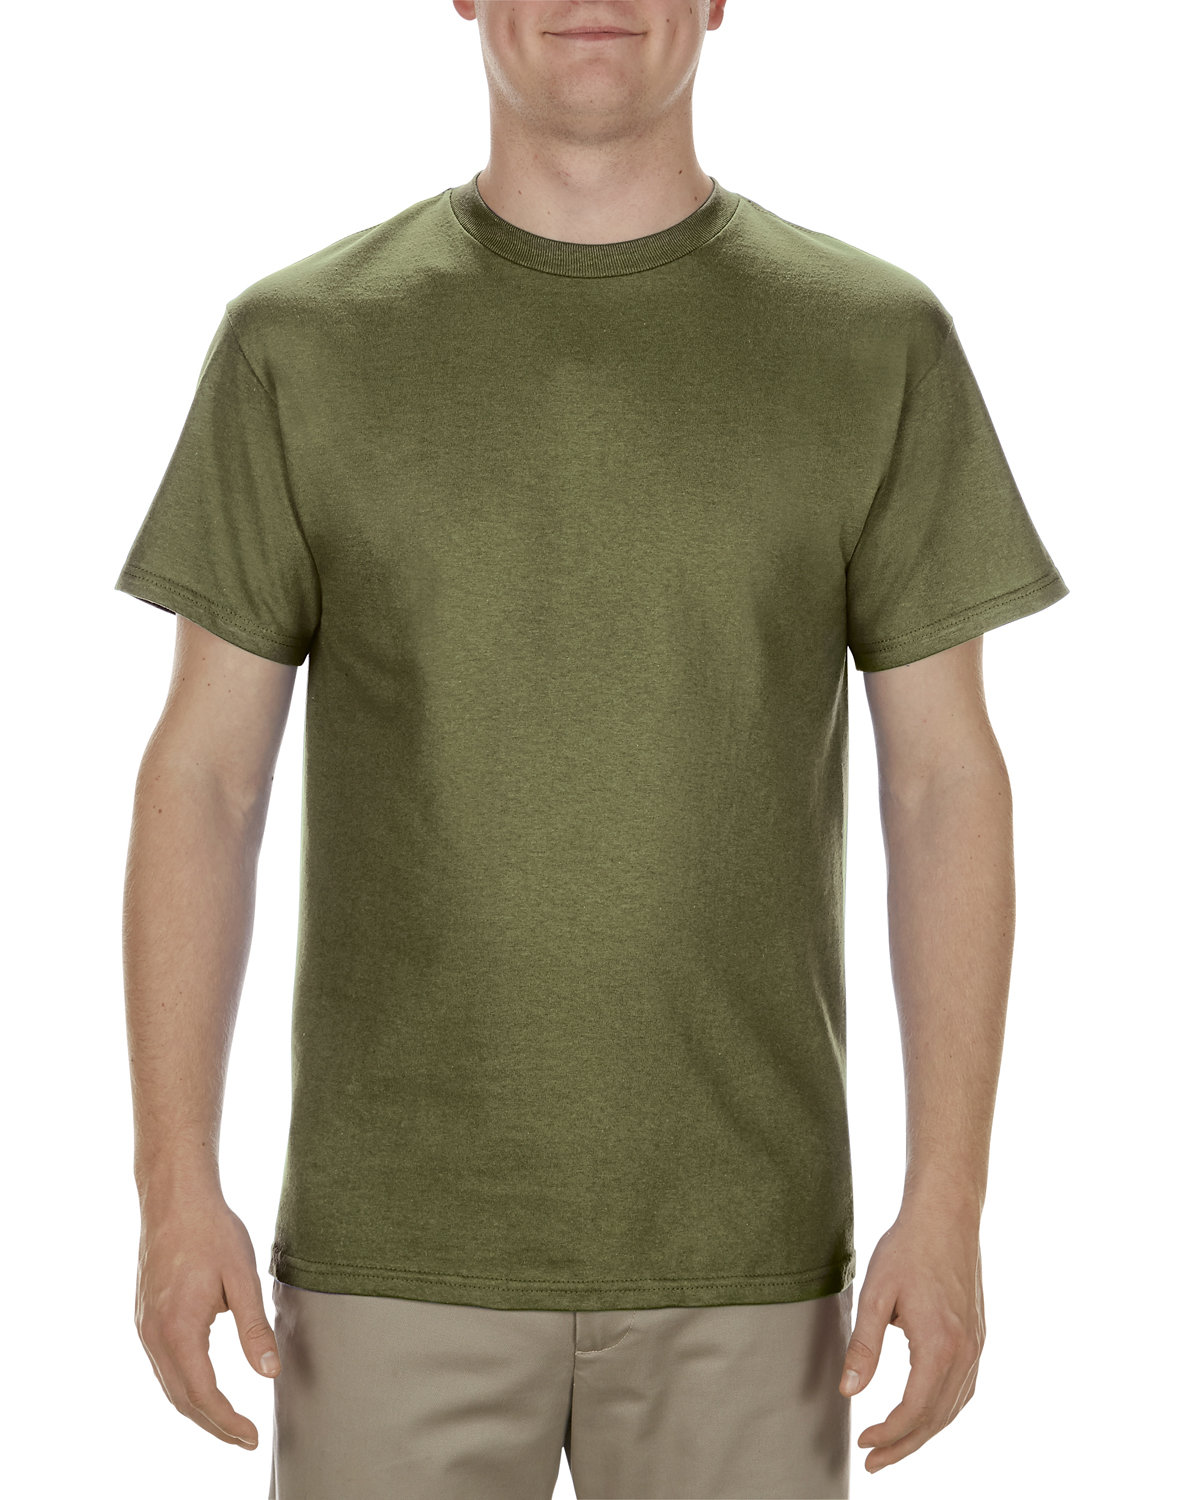 Alstyle Adult 5.1 oz., 100% Cotton T-Shirt MILITARY GREEN